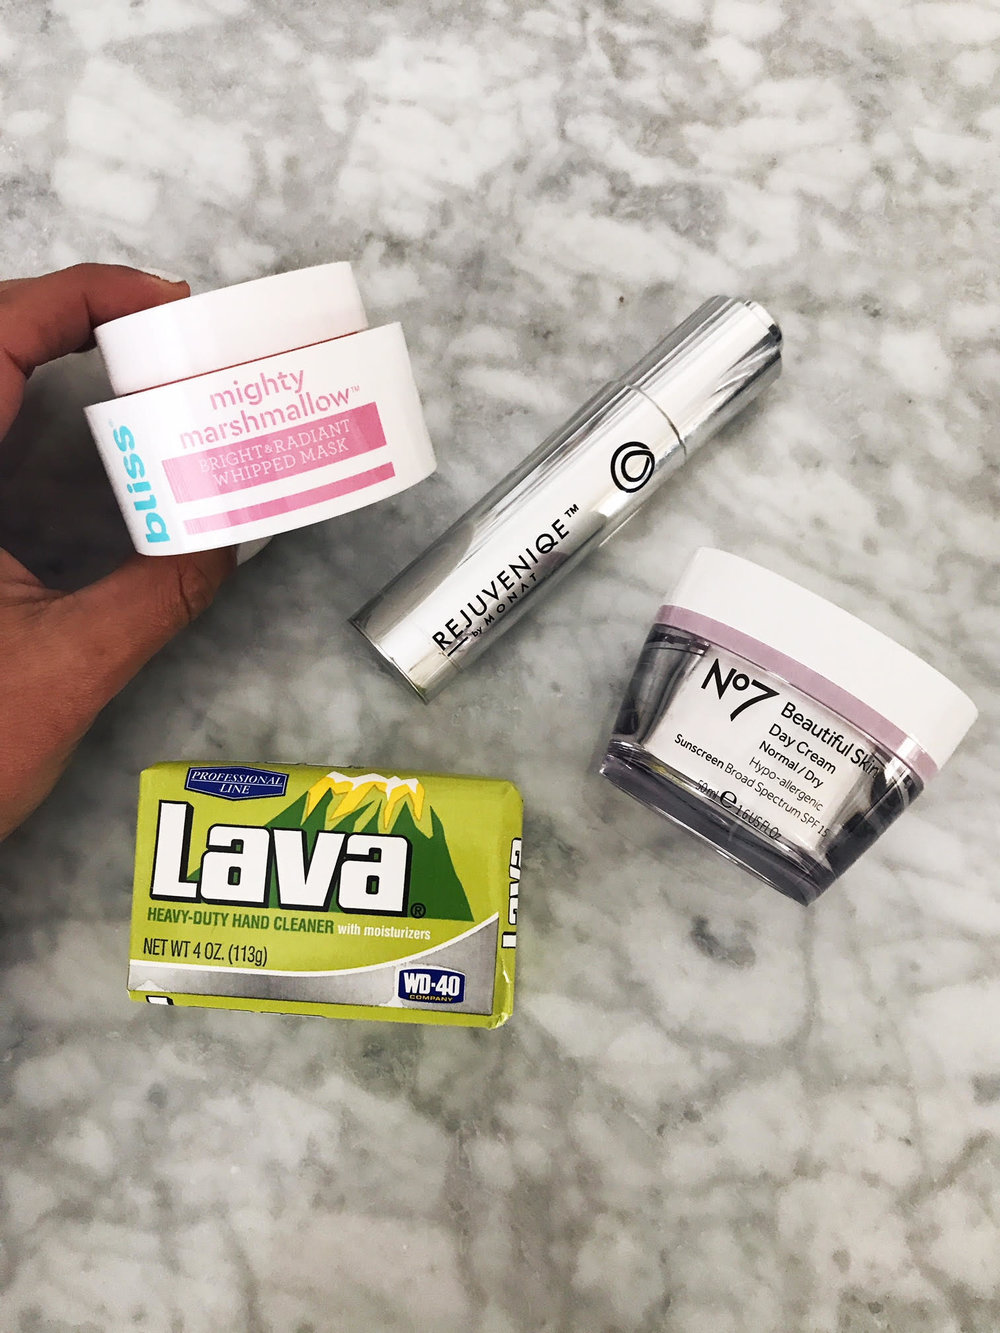 #SkinBabe Jessica Limeberry shares a photo of some of her favorite products!